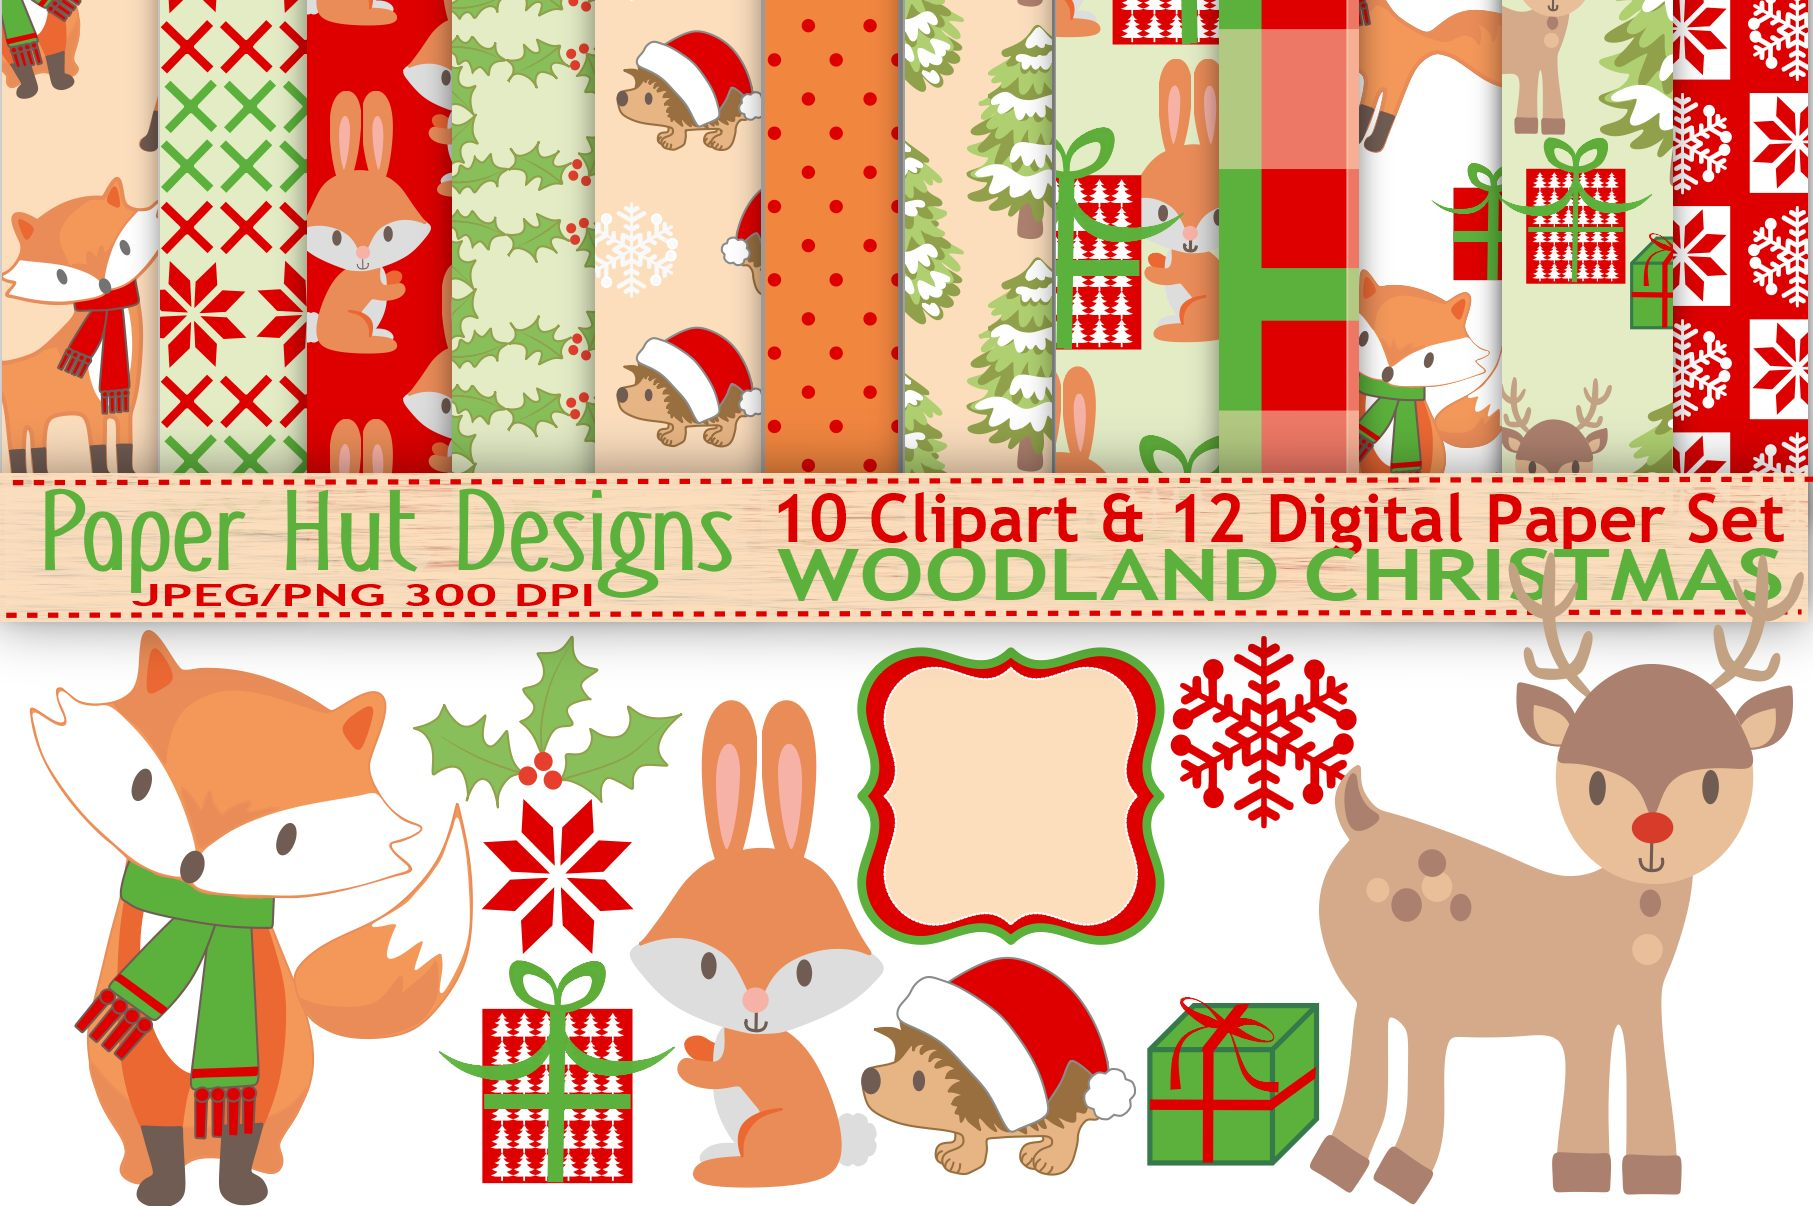 Woodland Christmas Clipart And Digital Papers Set Example Image 1